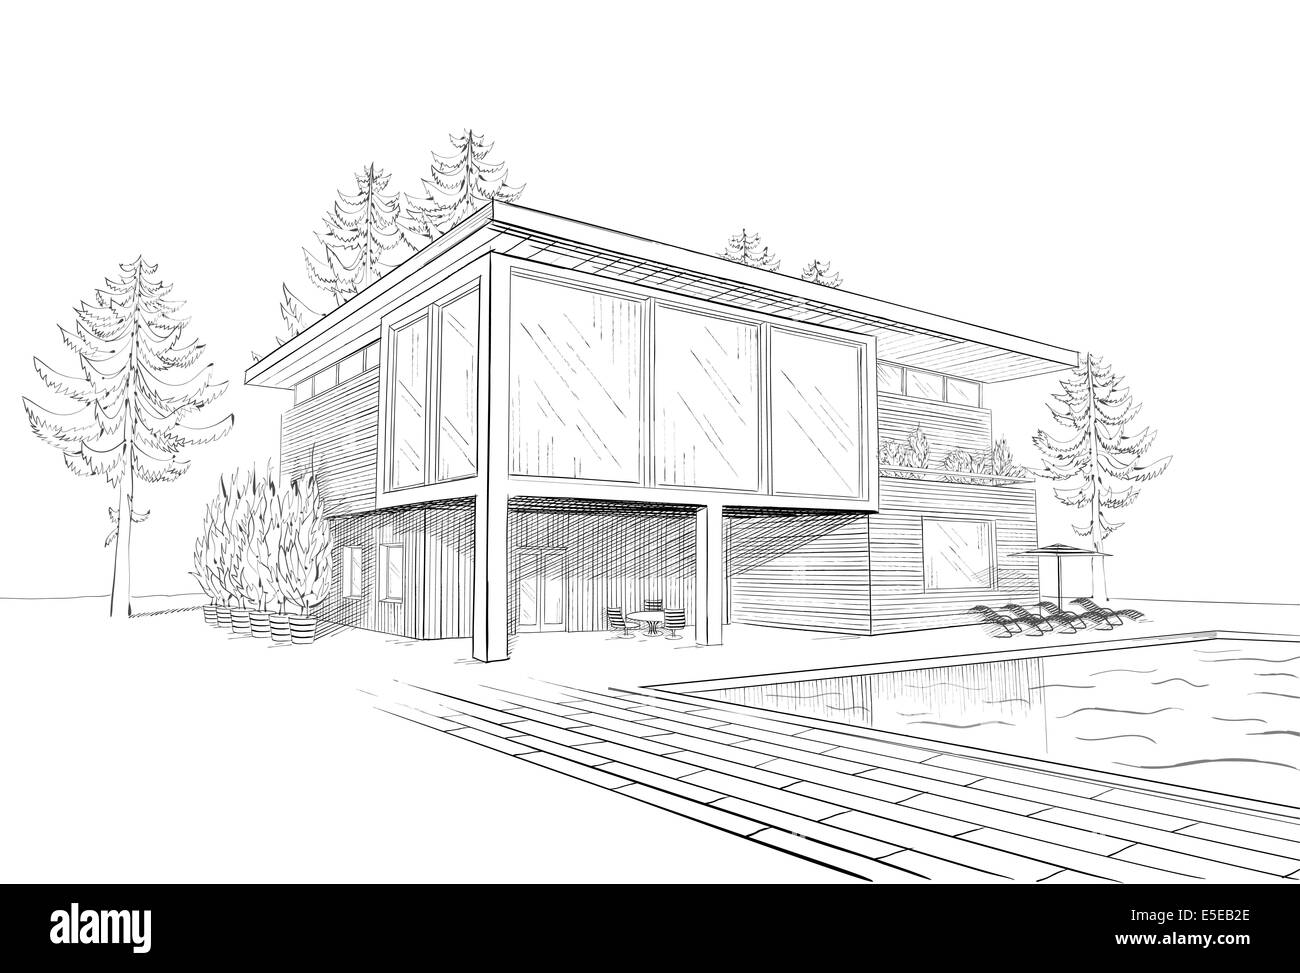 Black And White Sketch Of Modern Suburban Wooden House With Swimming Pool  And Chaise Lounges